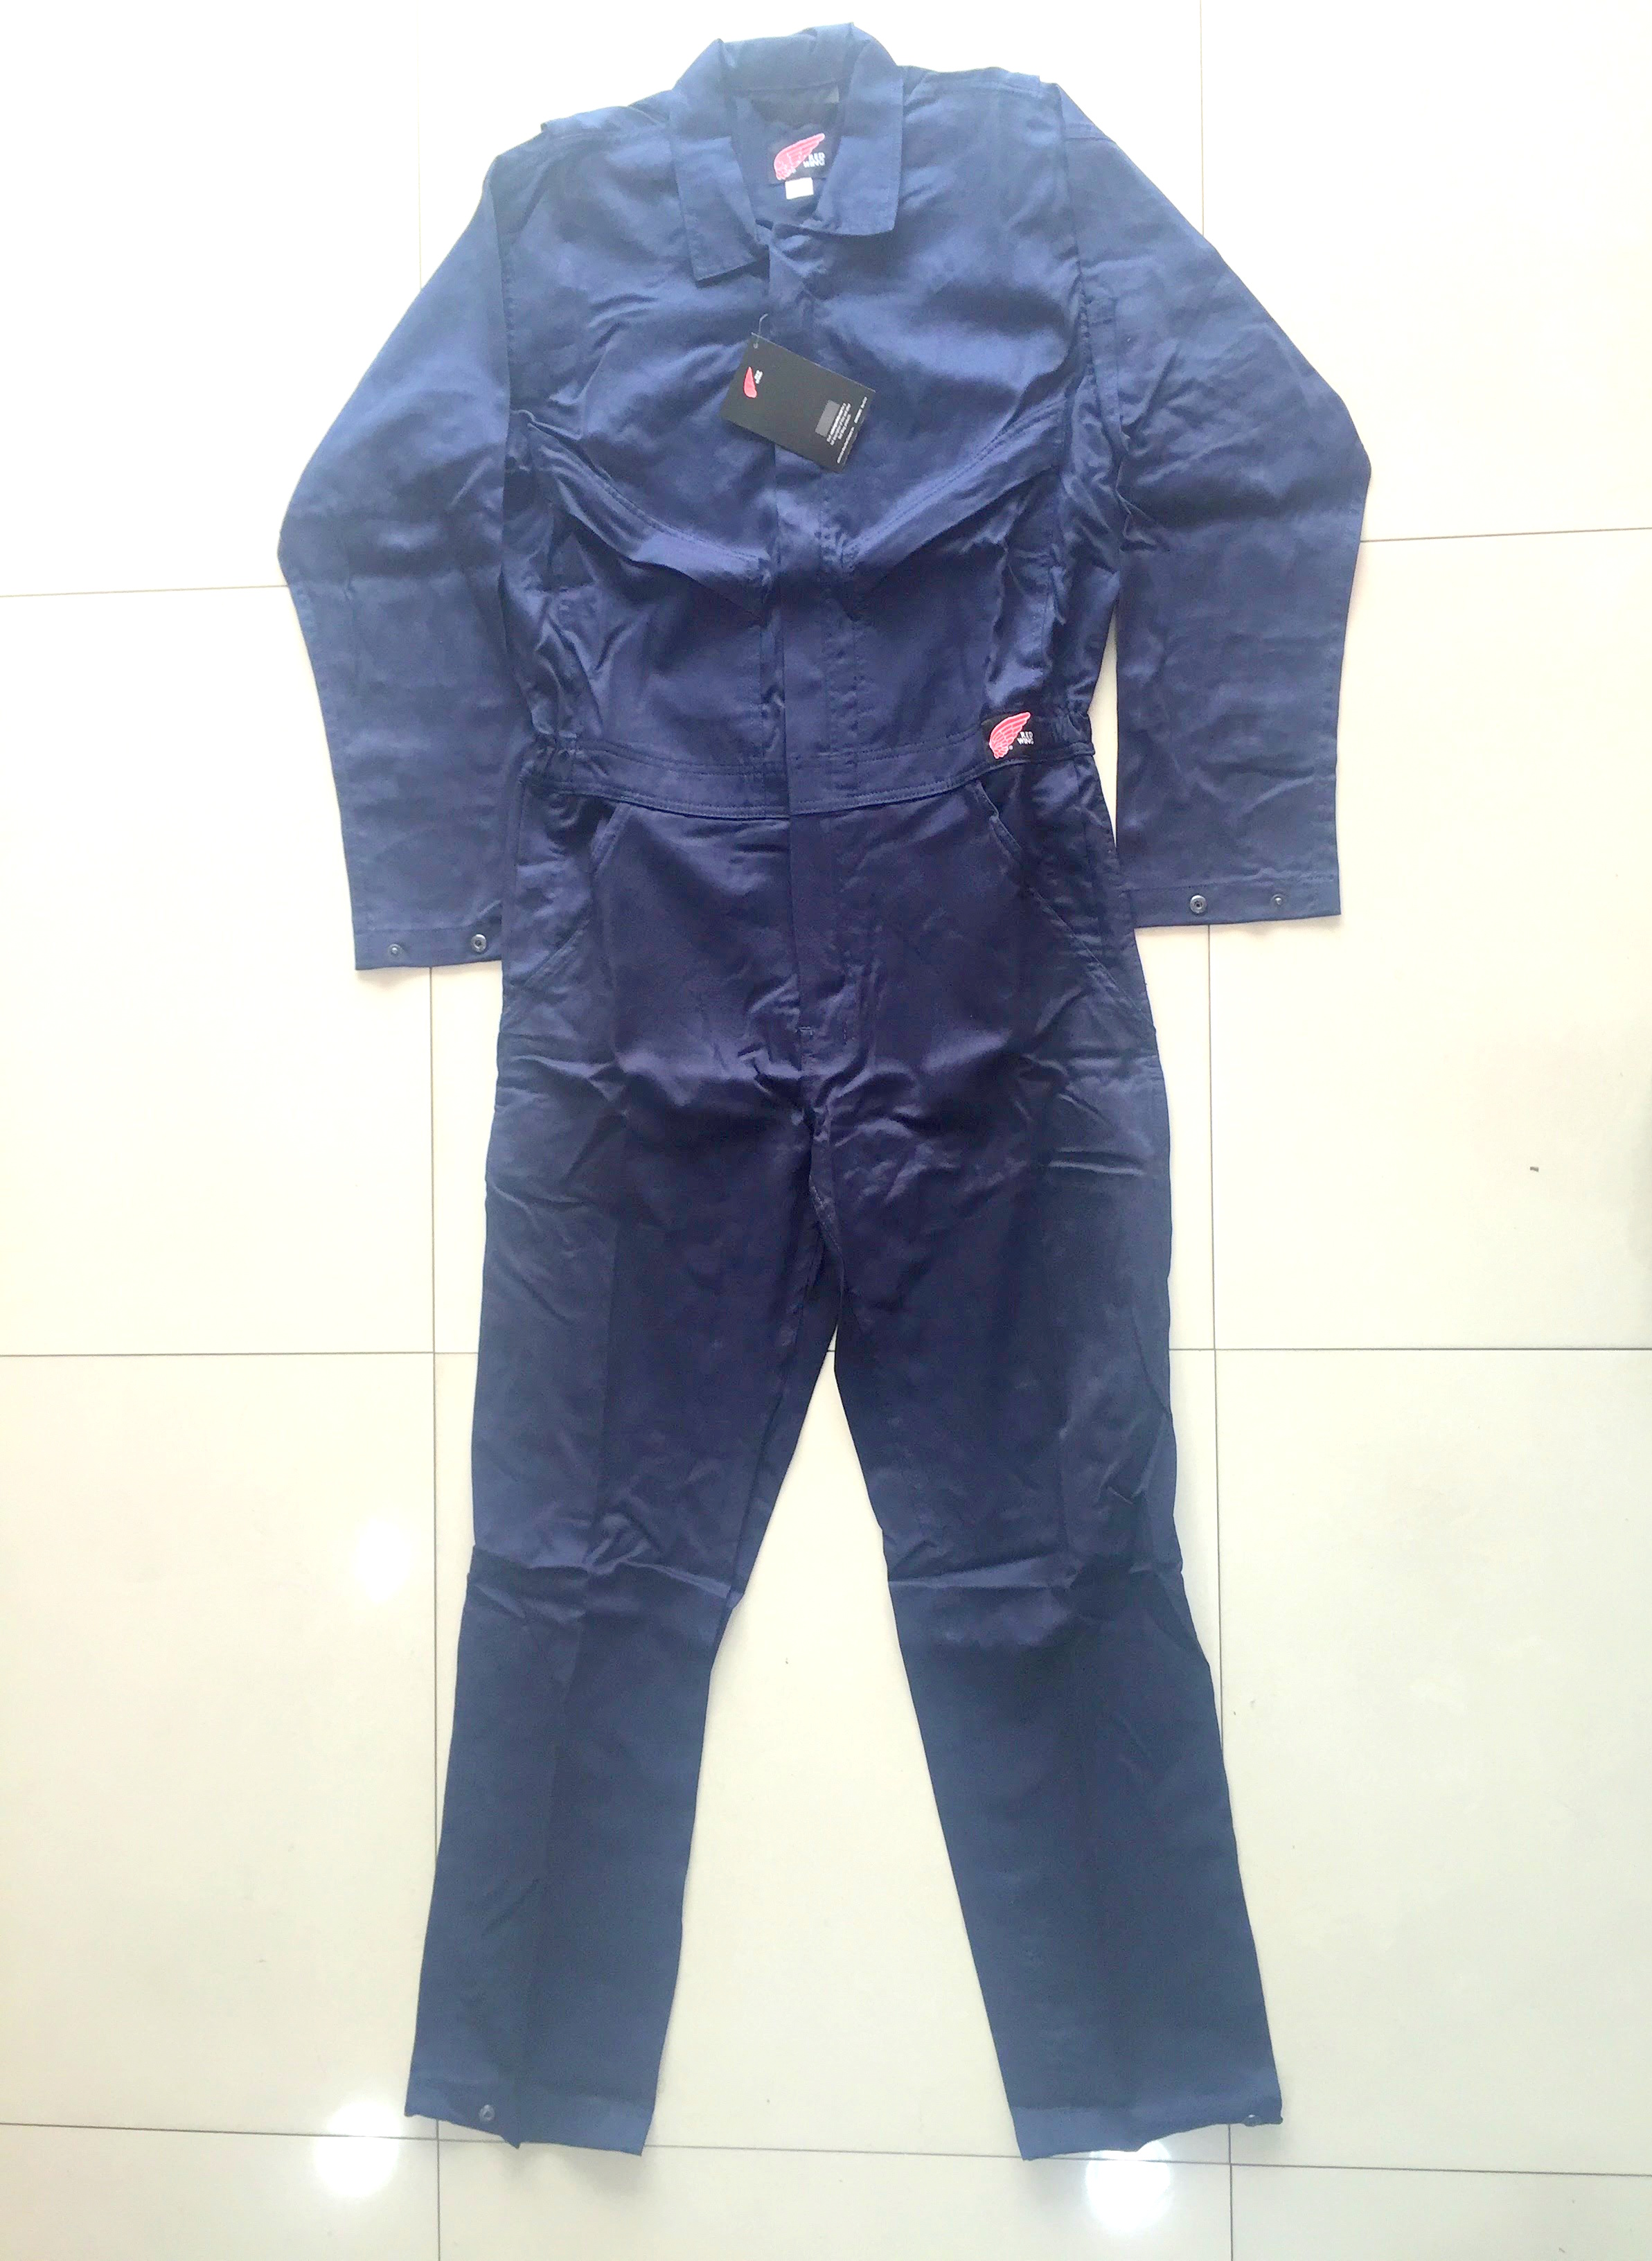 Branded Coveralls in Dubai UAE front side